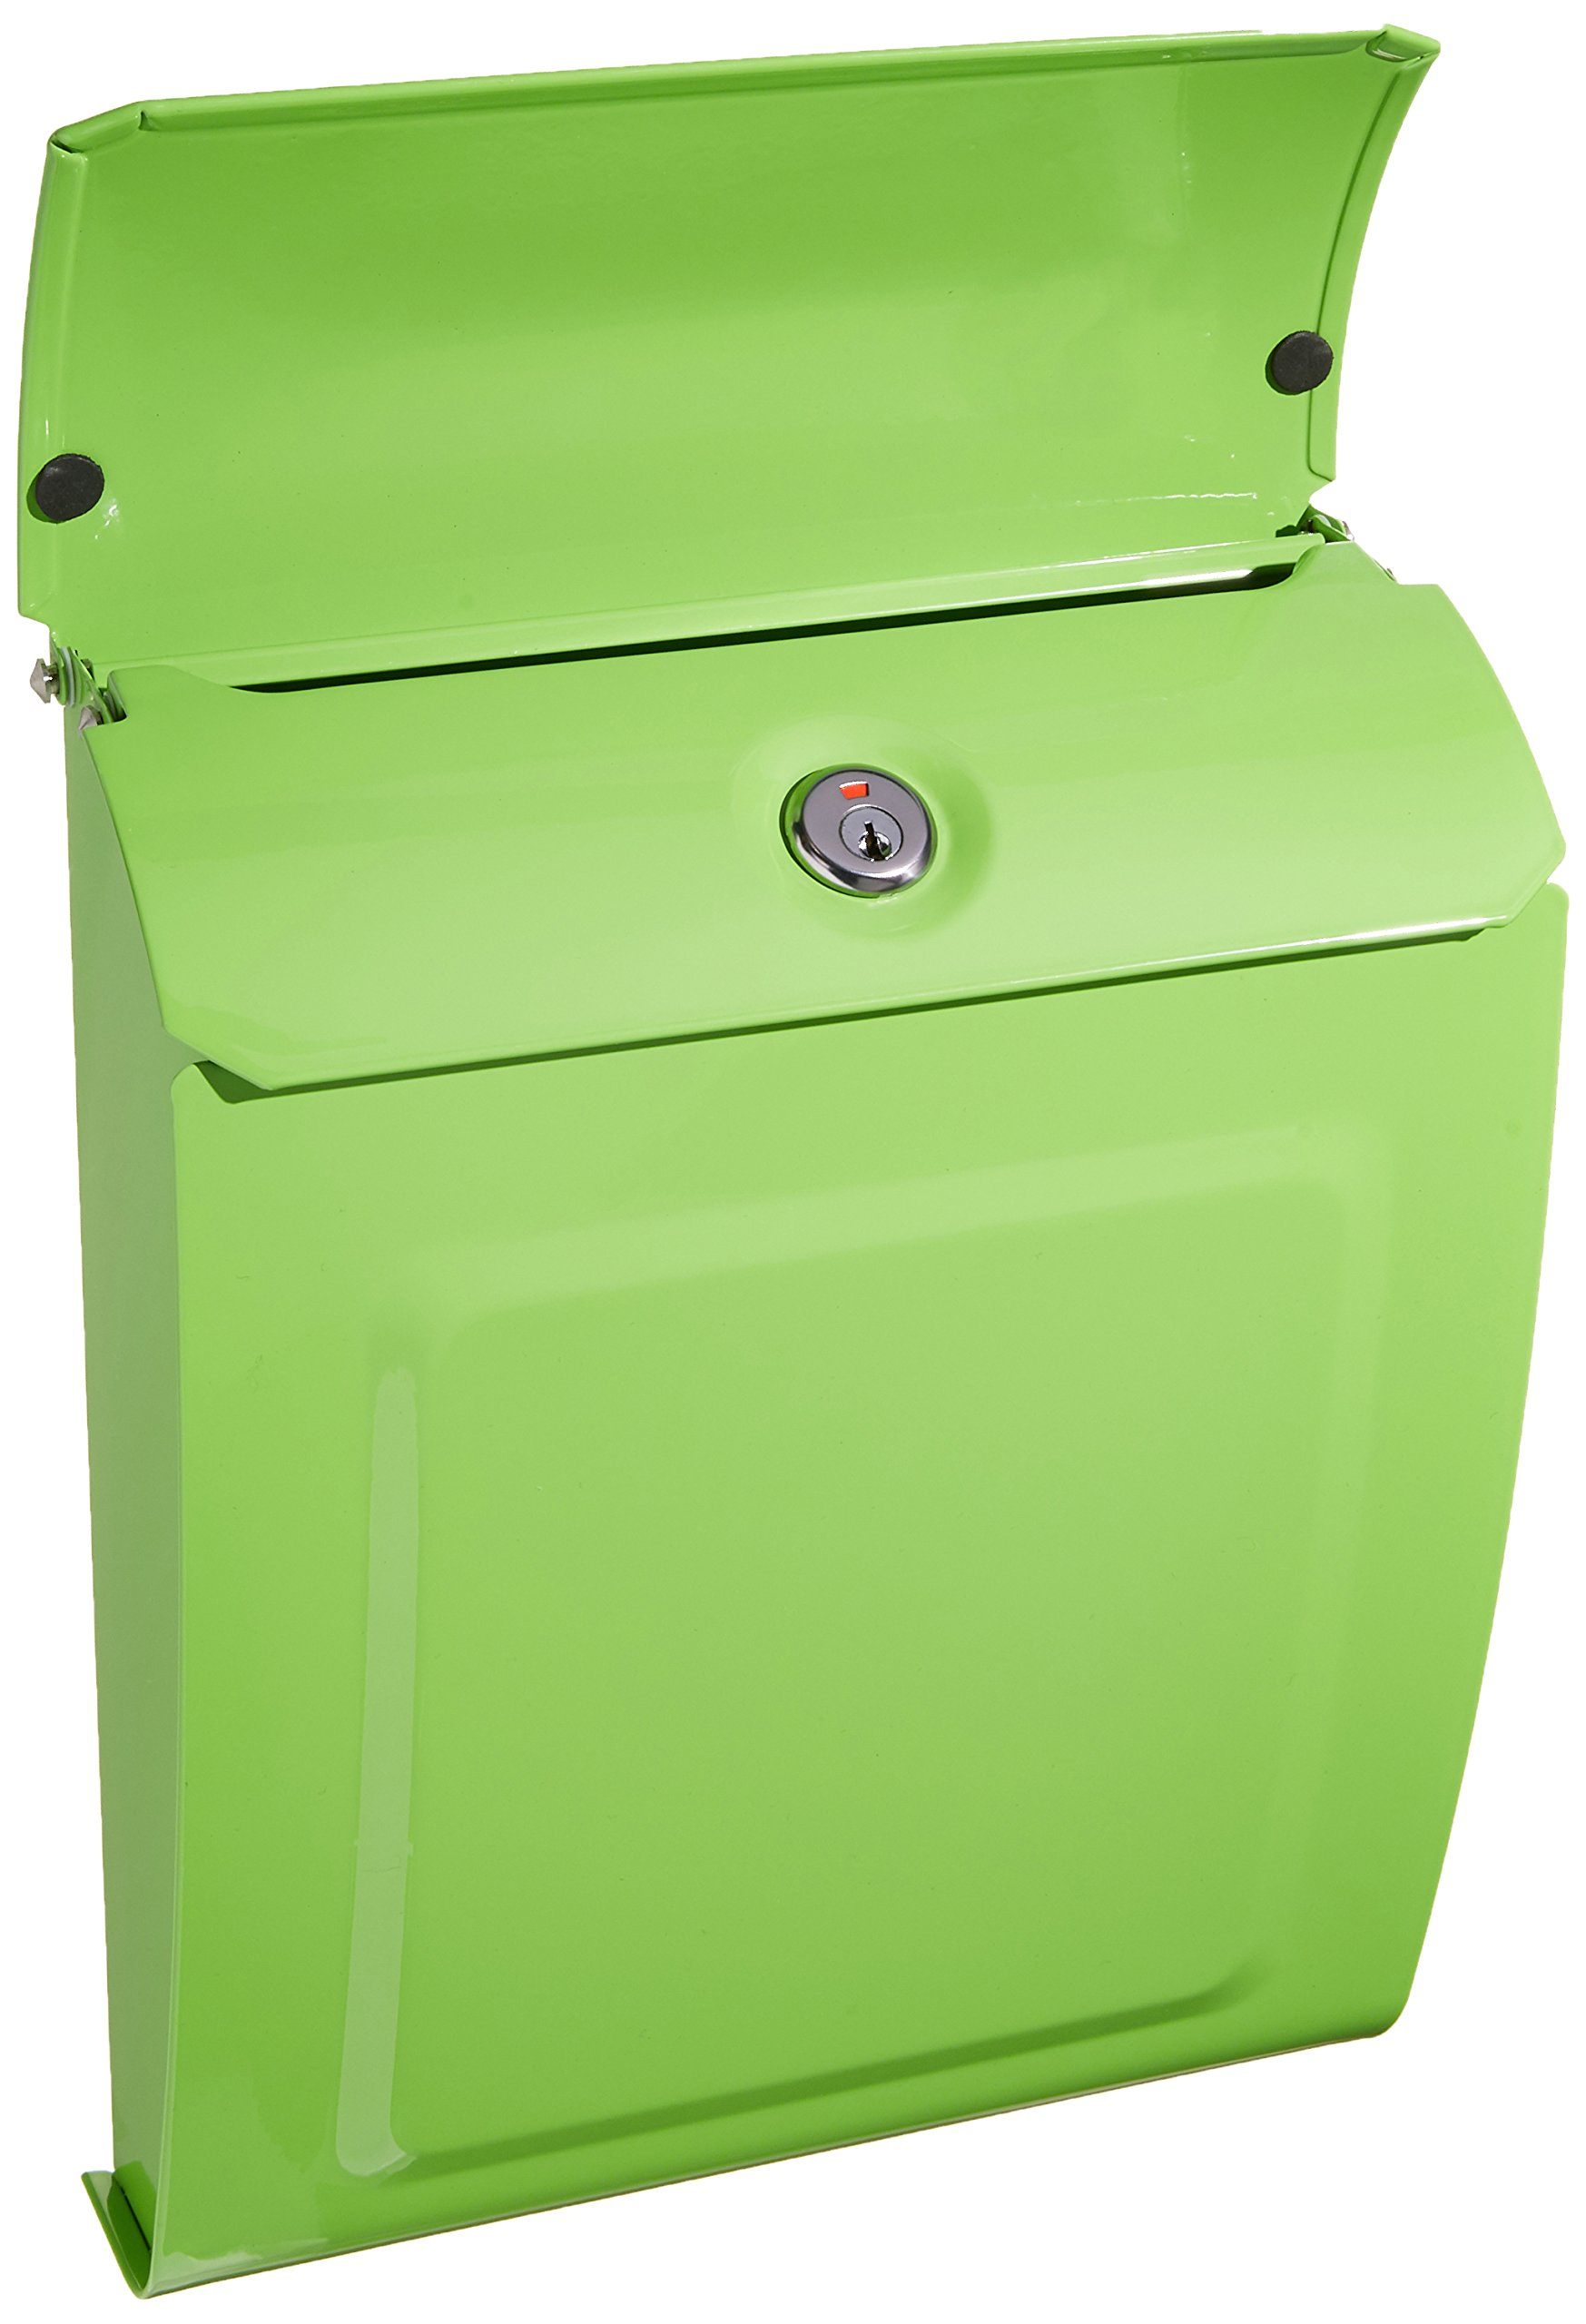 ARCHITECTURAL MAILBOXES 2594LG Architectural Mailboxes Aspen Locking Wall Mount Mailbox Lime Green Aspen Locking Wall Mount Mailbox, Small, Lime Green by ARCHITECTURAL MAILBOXES (Image #2)